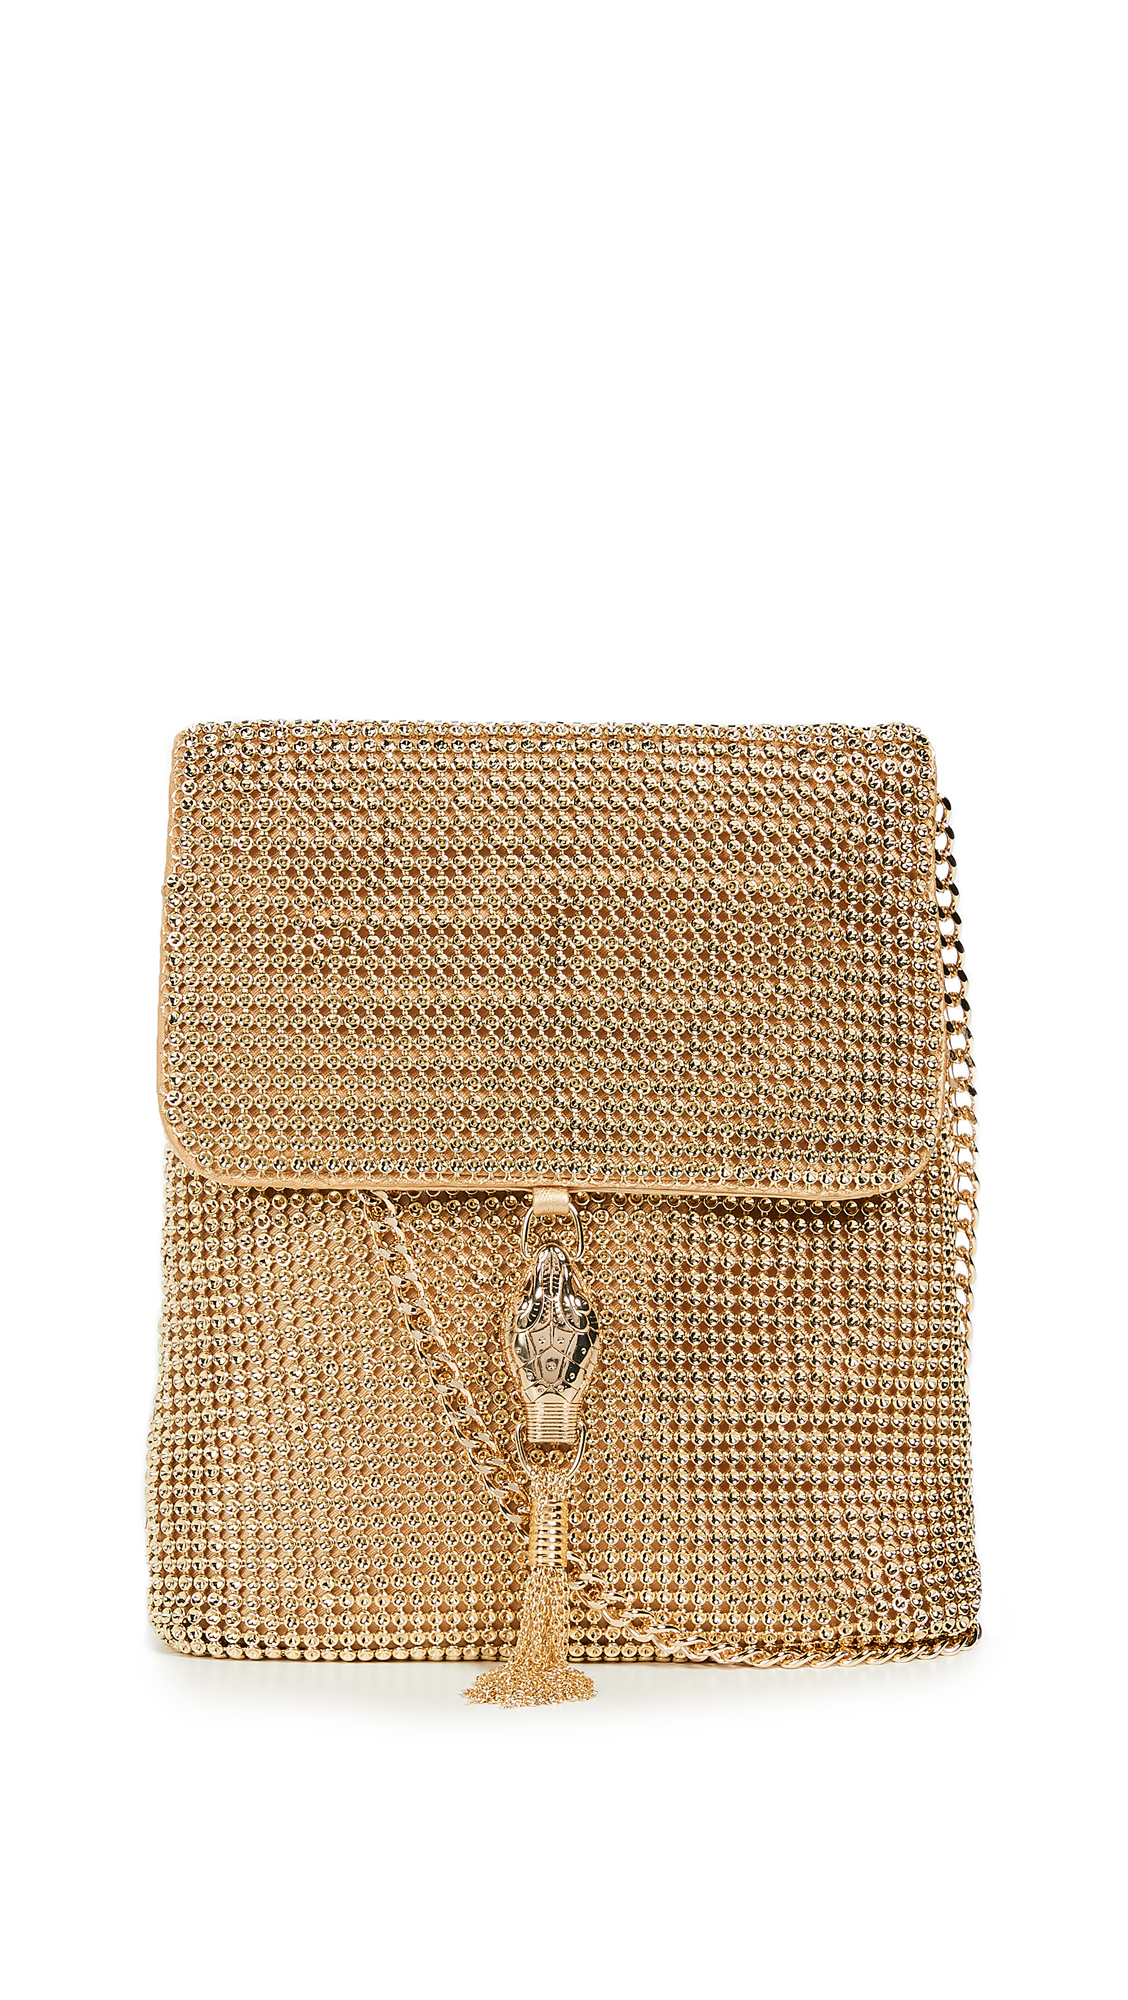 Whiting & Davis Jeanne Cross Body Bag In Gold